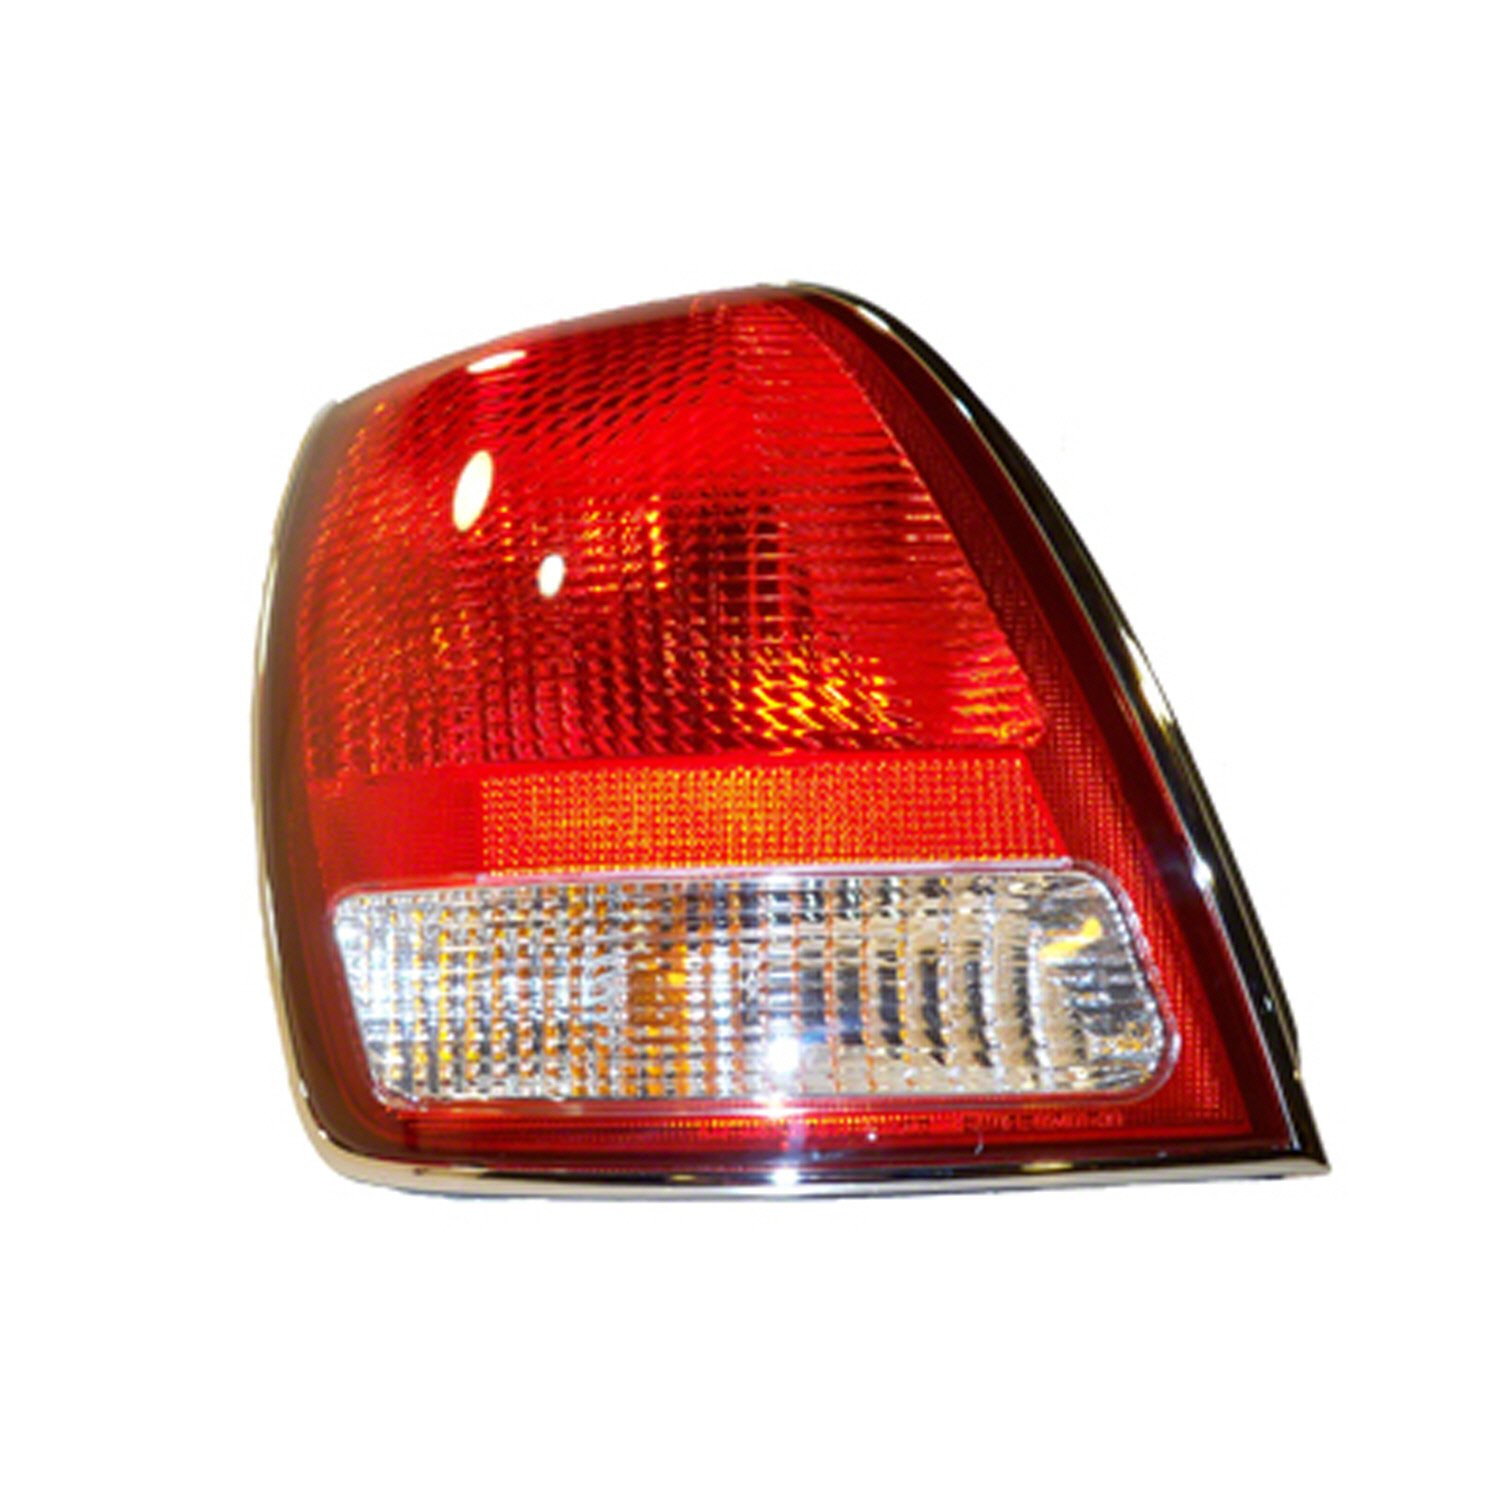 Multiple Manufacturers HY2800132OE OE Replacement Tail Light Assembly HYUNDAI XG300 2002-2003 Partslink HY2800132